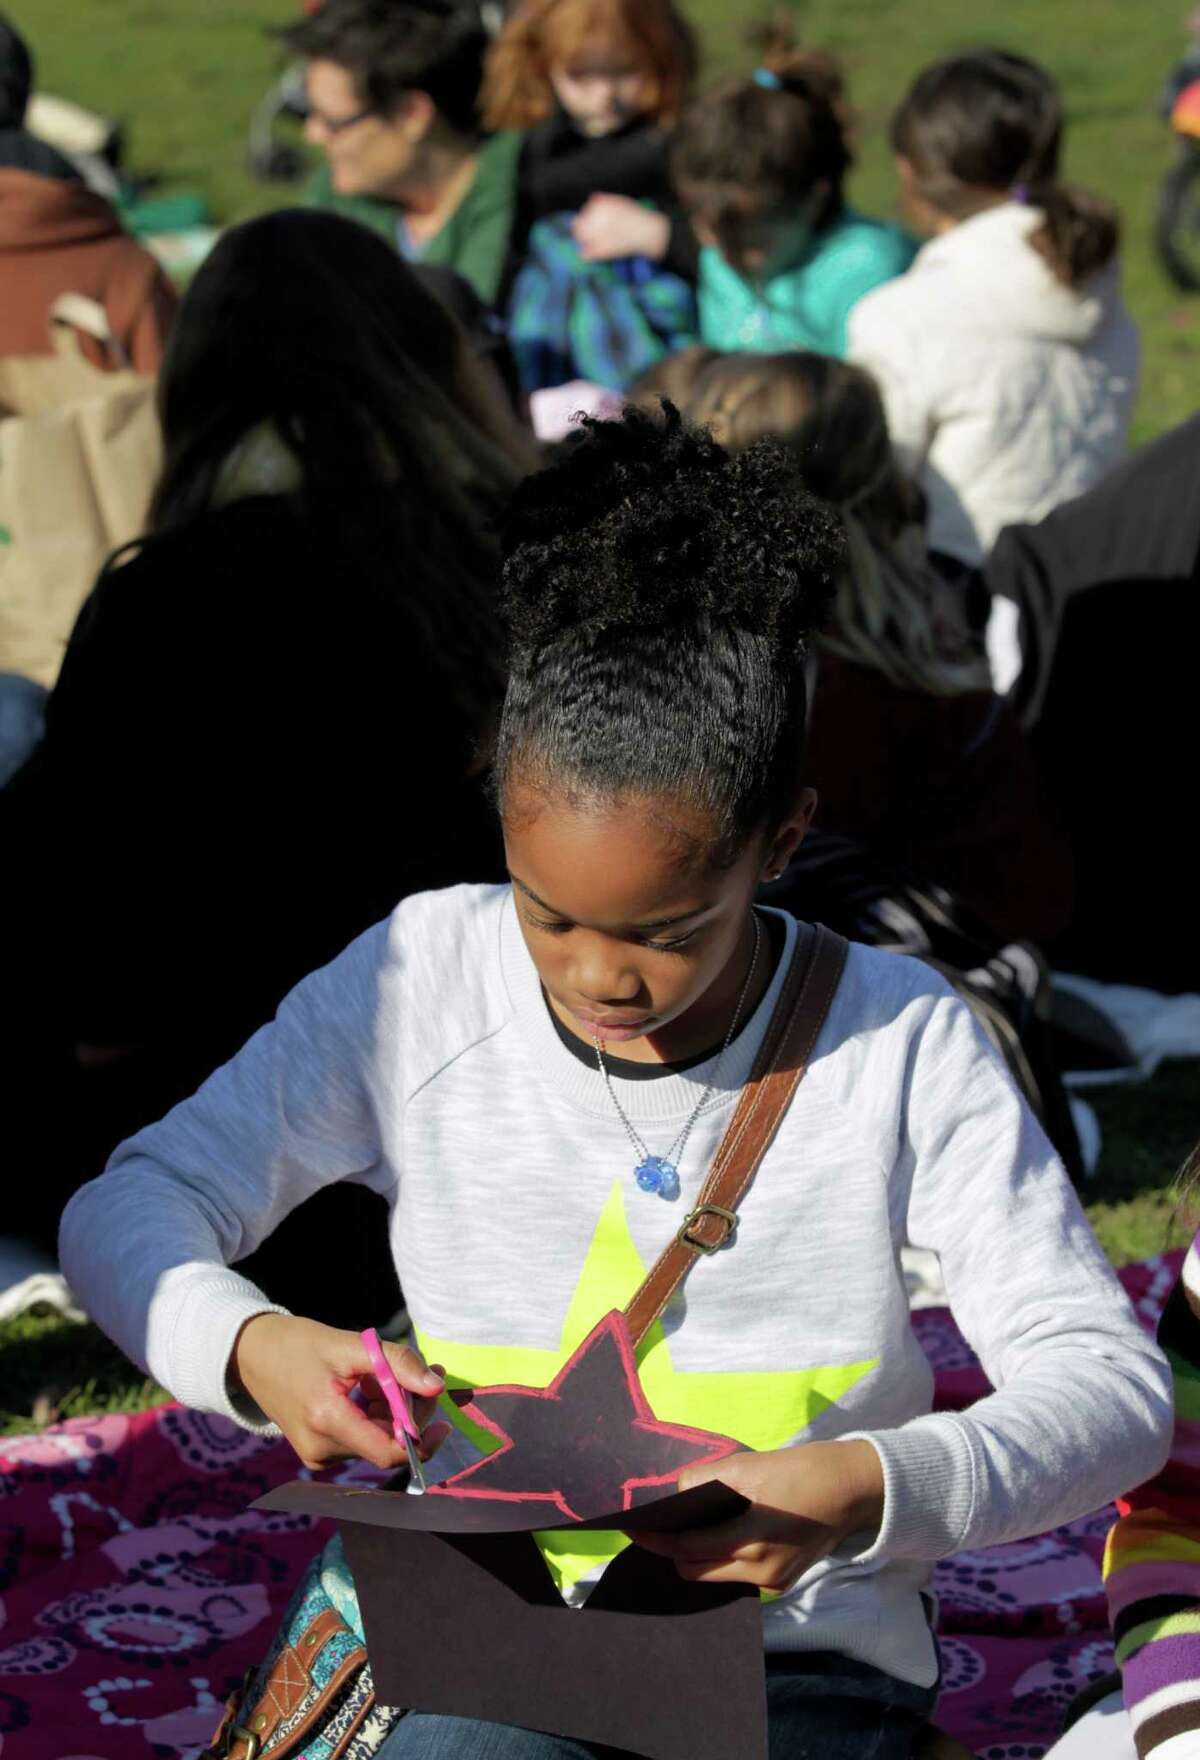 De'Yani Dillard, 10, a member of the Radical Brownies youth organization, makes a star at a Black Lives Matter story time action near Lake Merritt in Oakland, Calif. on Saturday, Jan 3, 2015. The Colorful Mamas of the 99 Percent organized the event to engage children in current social and political issues.